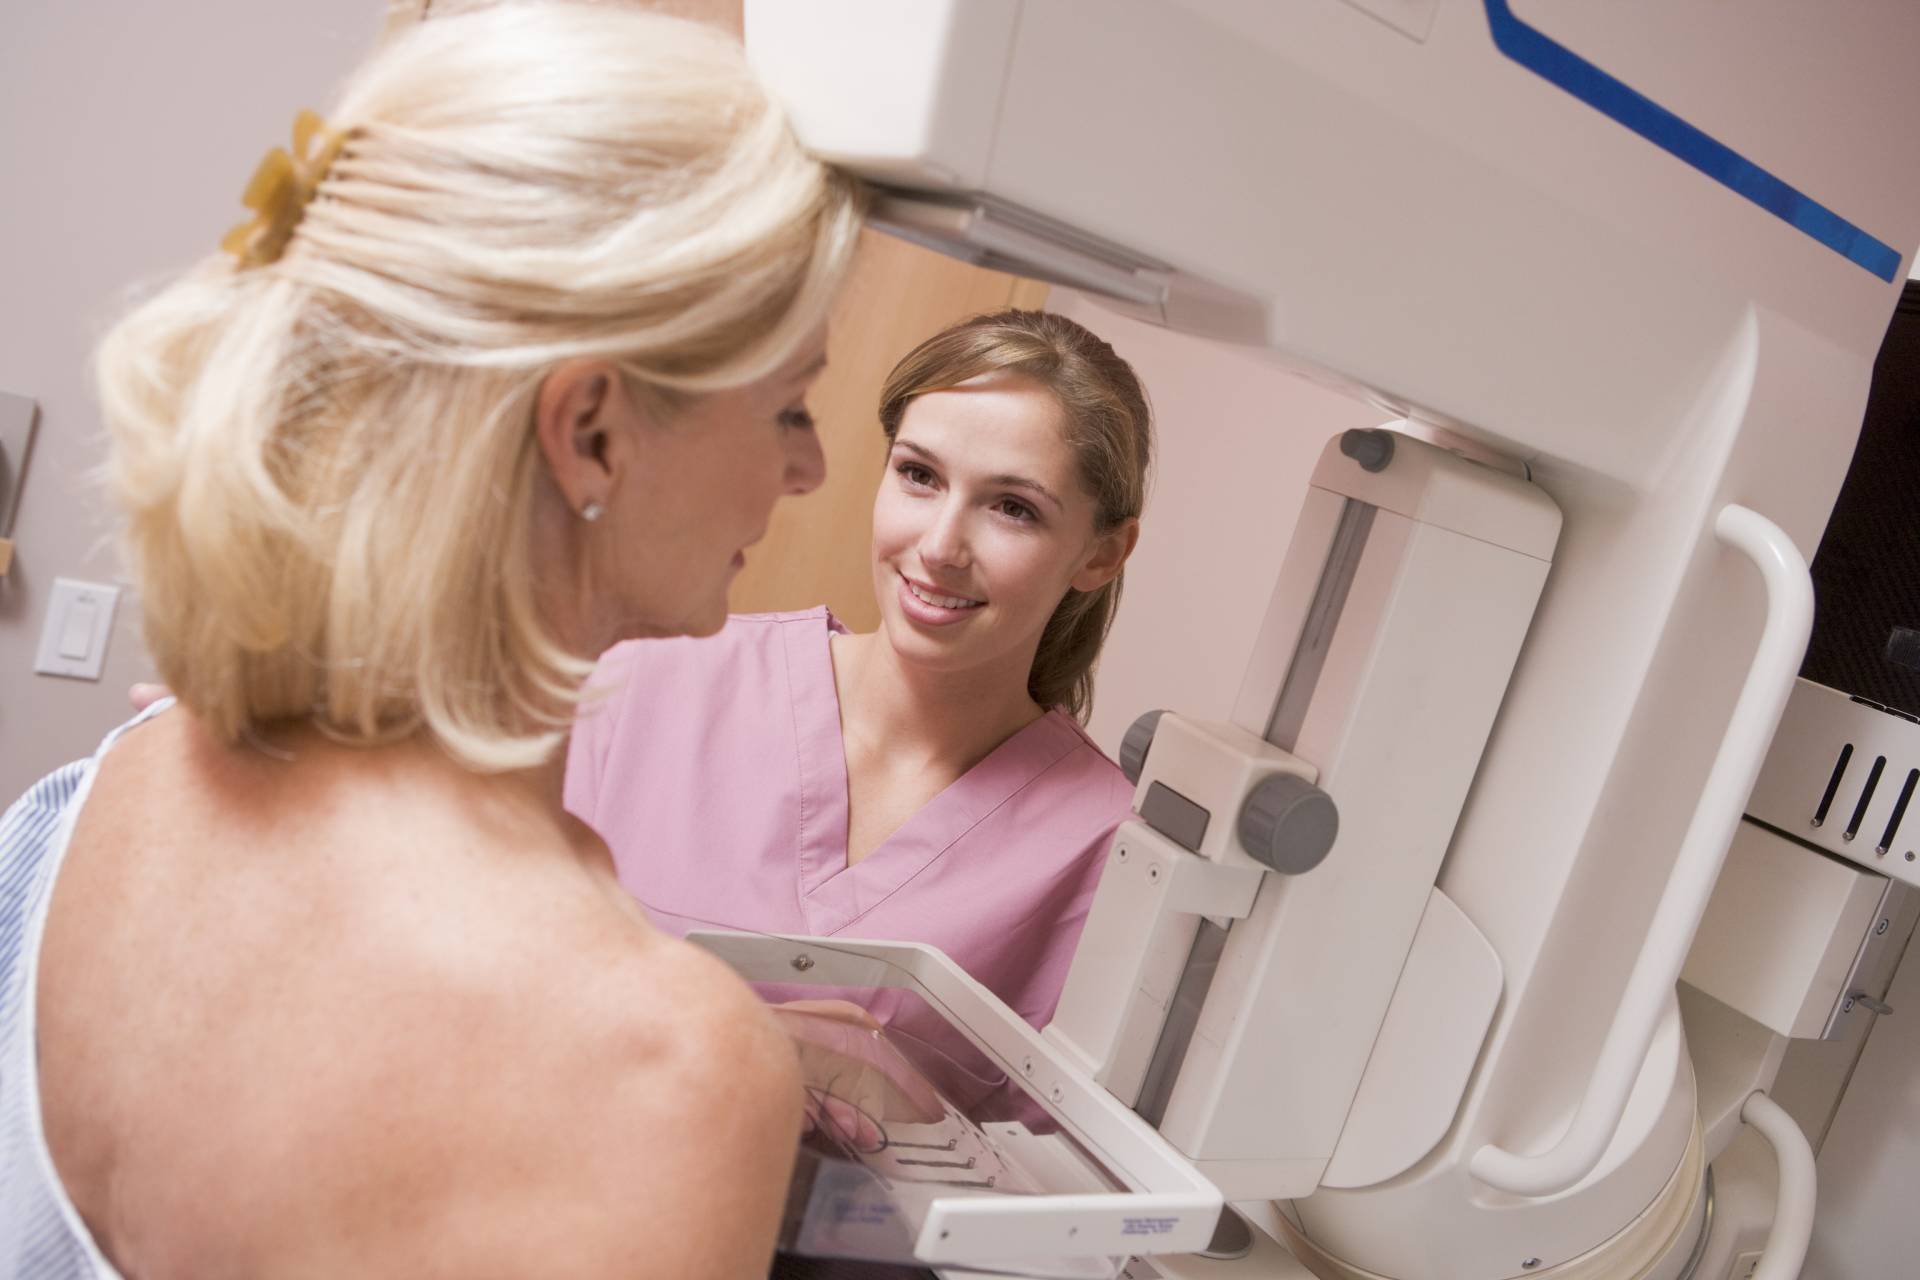 Mammography examination patient